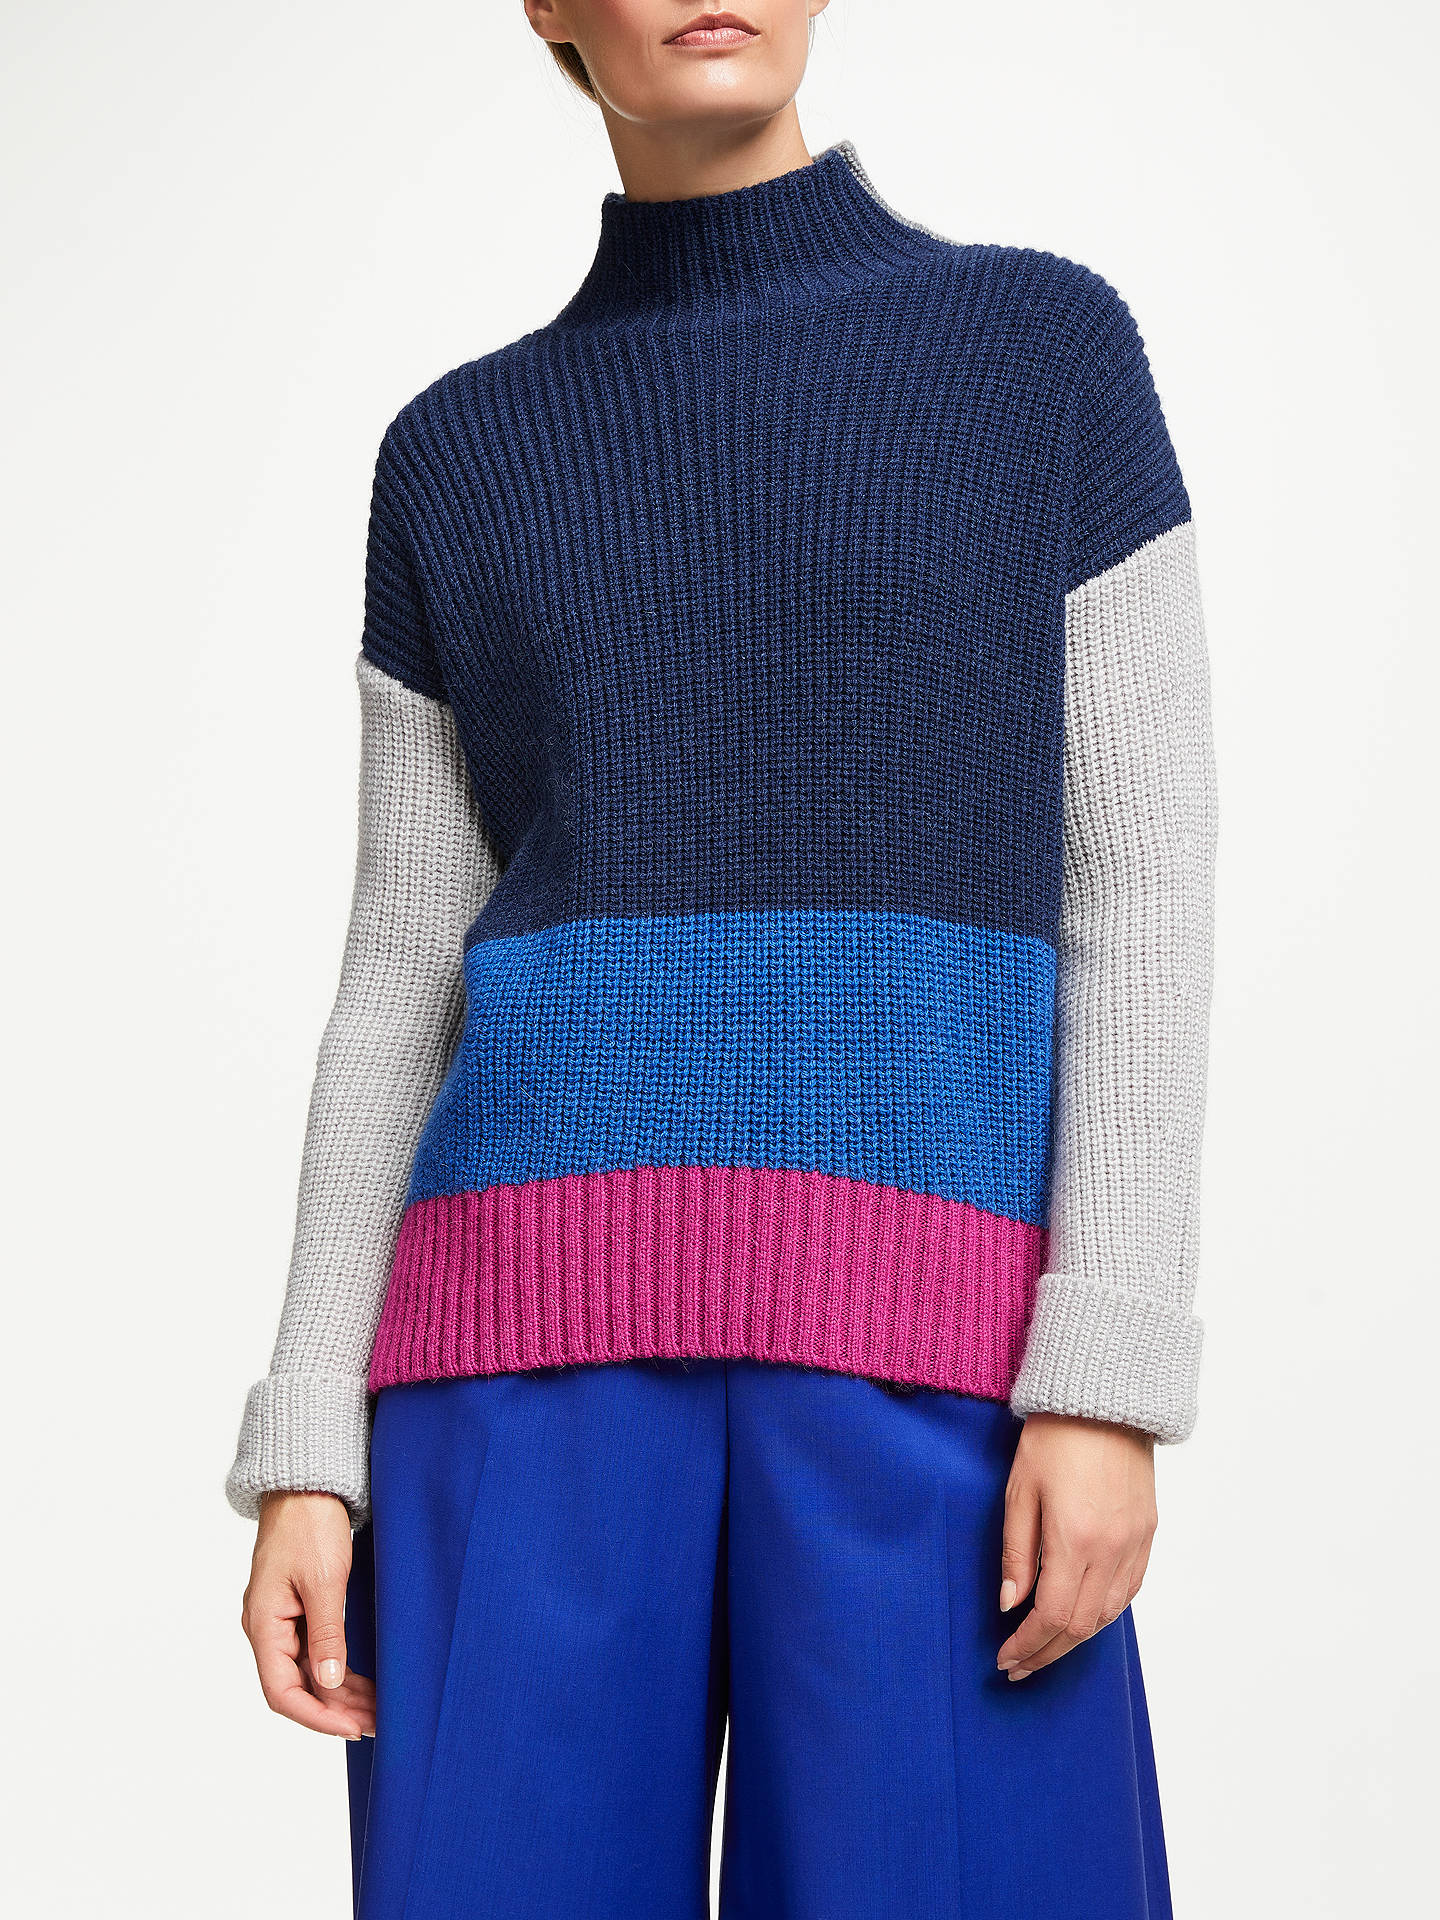 Buy John Lewis & Partners Block Colour Turtle Neck Sweater, Blue/Grey/Pink, XS Online at johnlewis.com